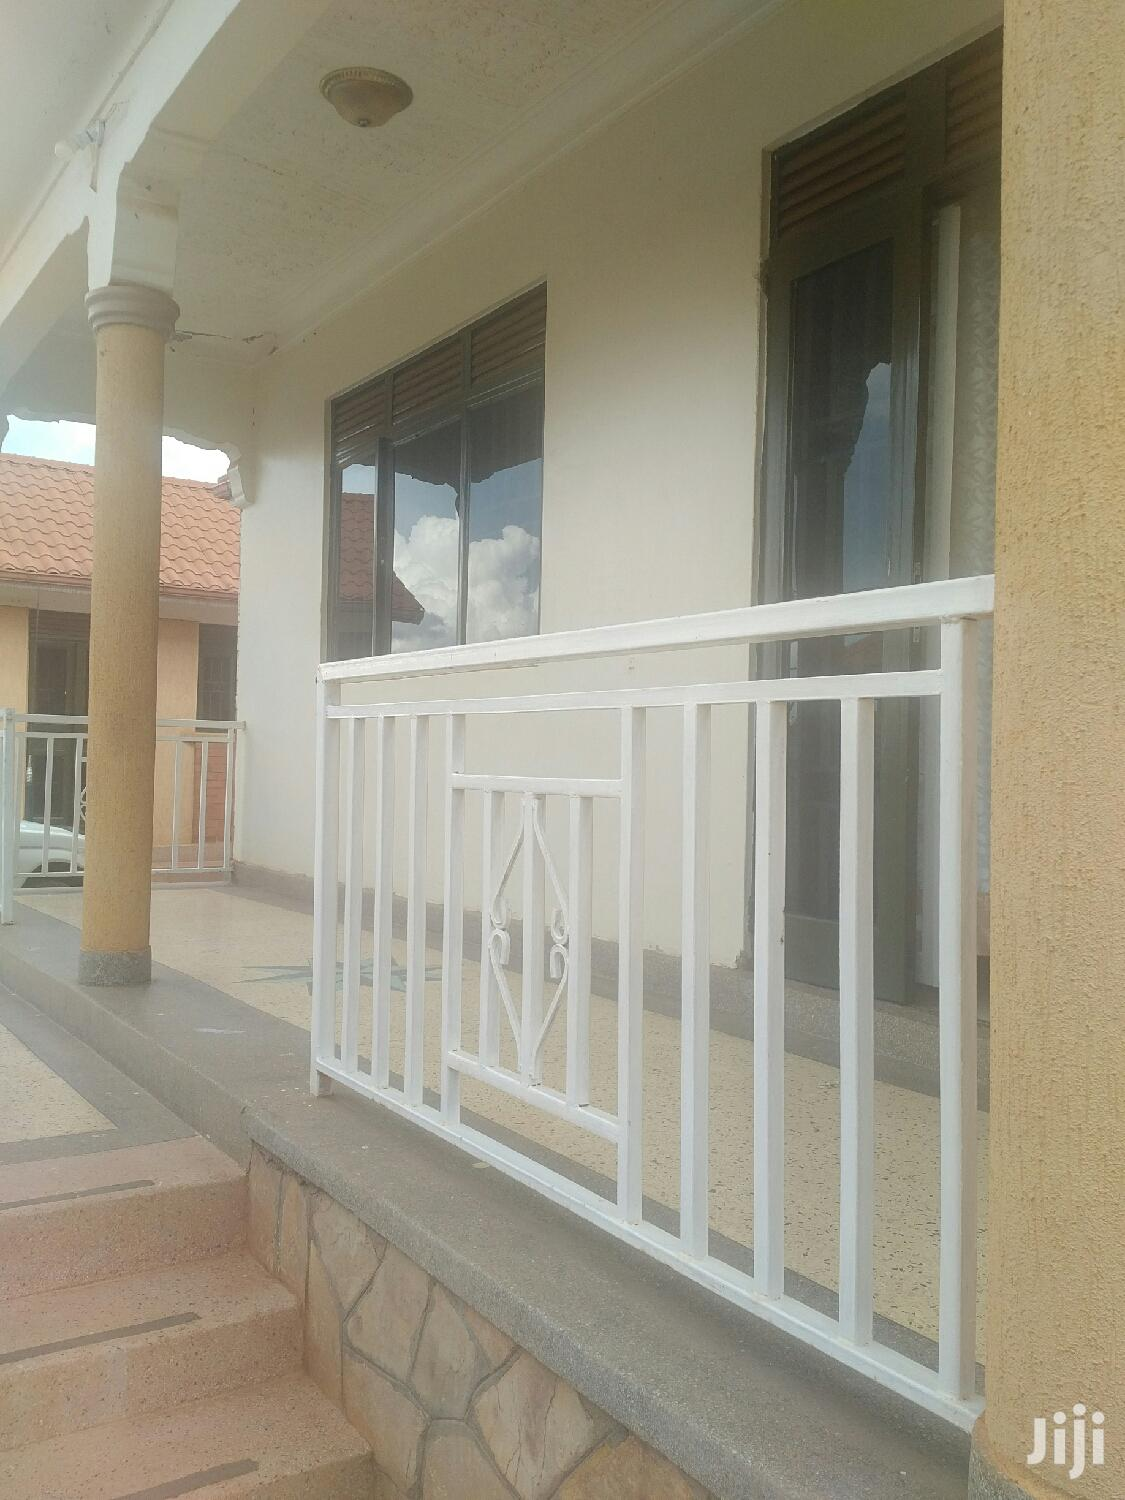 Three Bedroom House In Seguku For Sale | Houses & Apartments For Sale for sale in Kampala, Central Region, Uganda